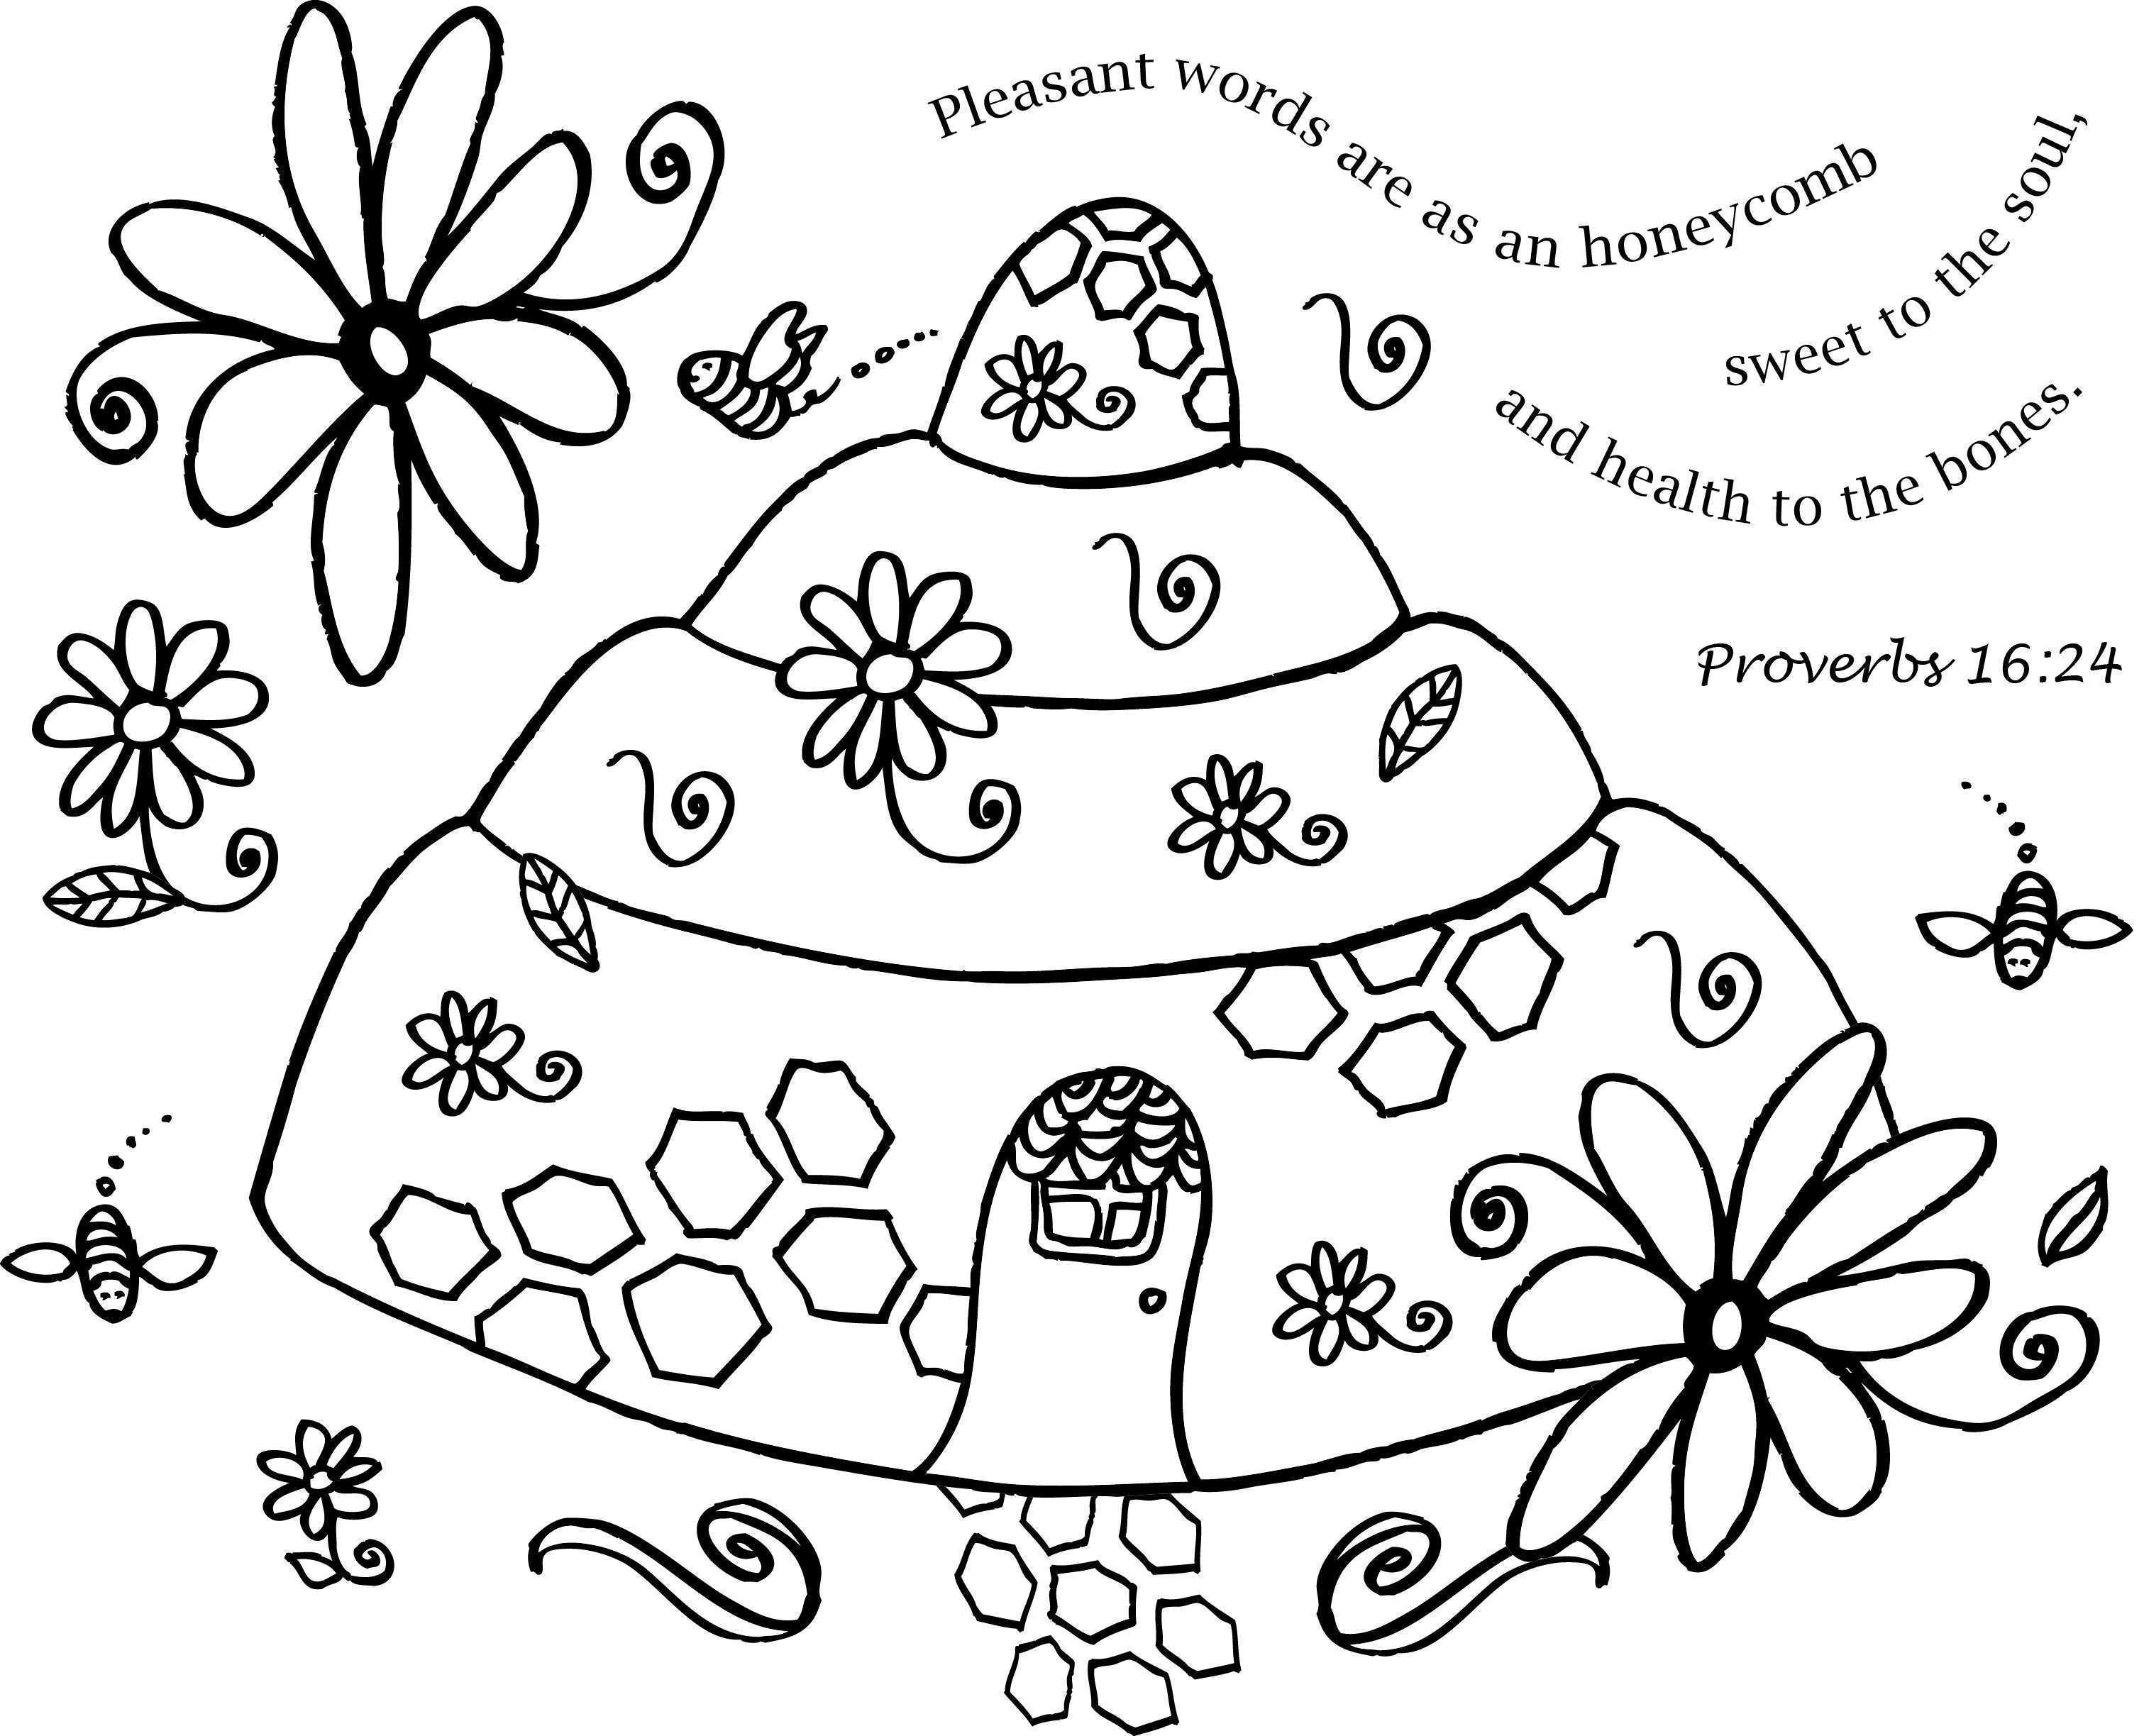 Beehive Coloring Page With Stencil Designs For Walls And Crafts